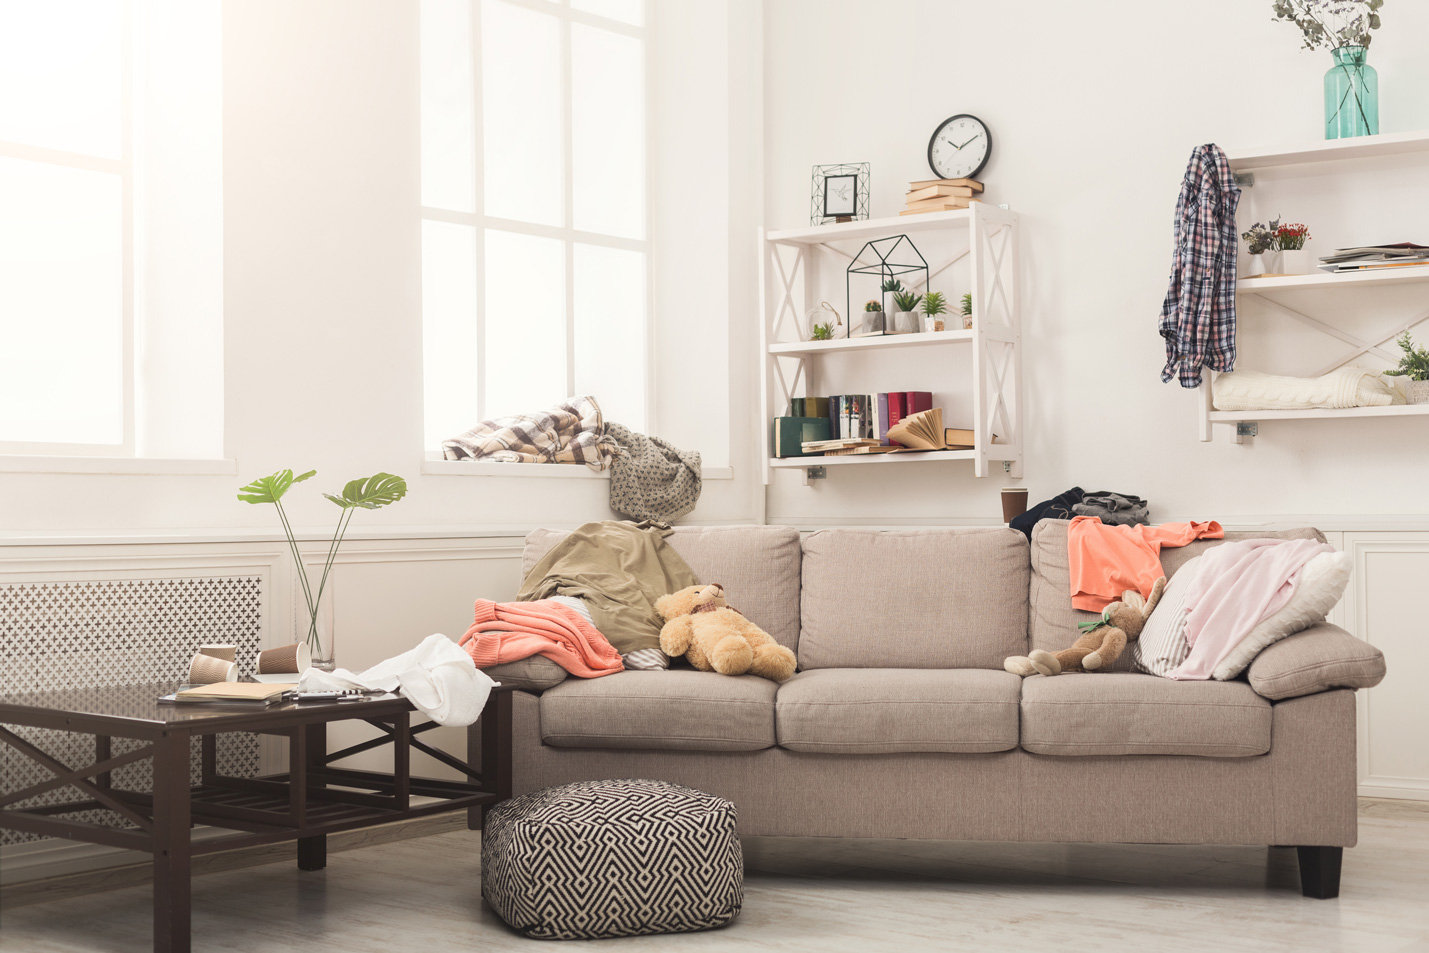 How to Neatly Organize and Clean Your Room